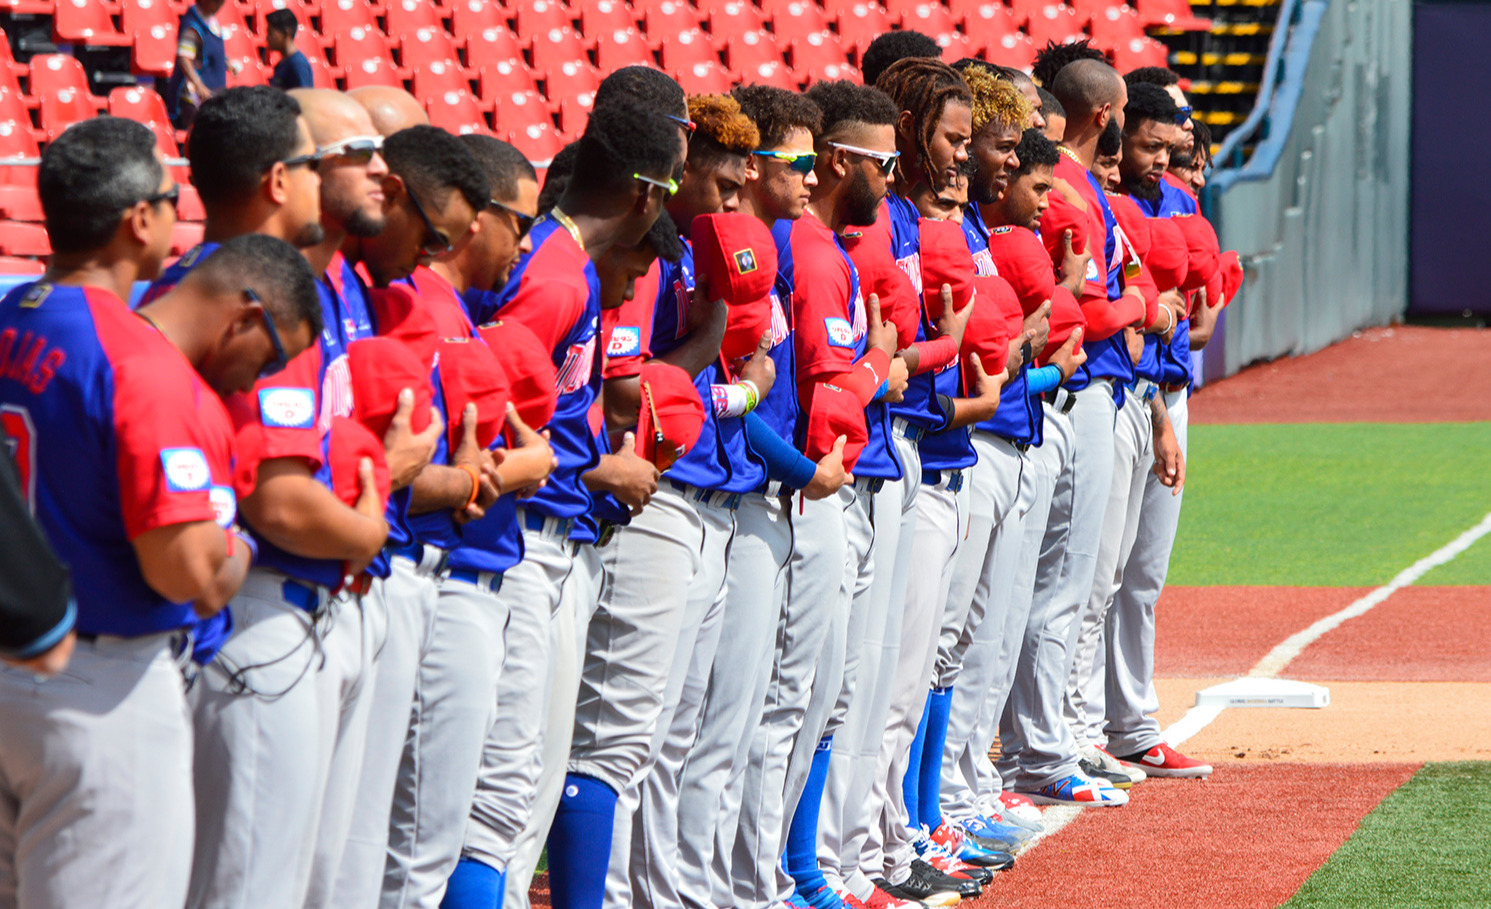 Dominican Republic National Anthem